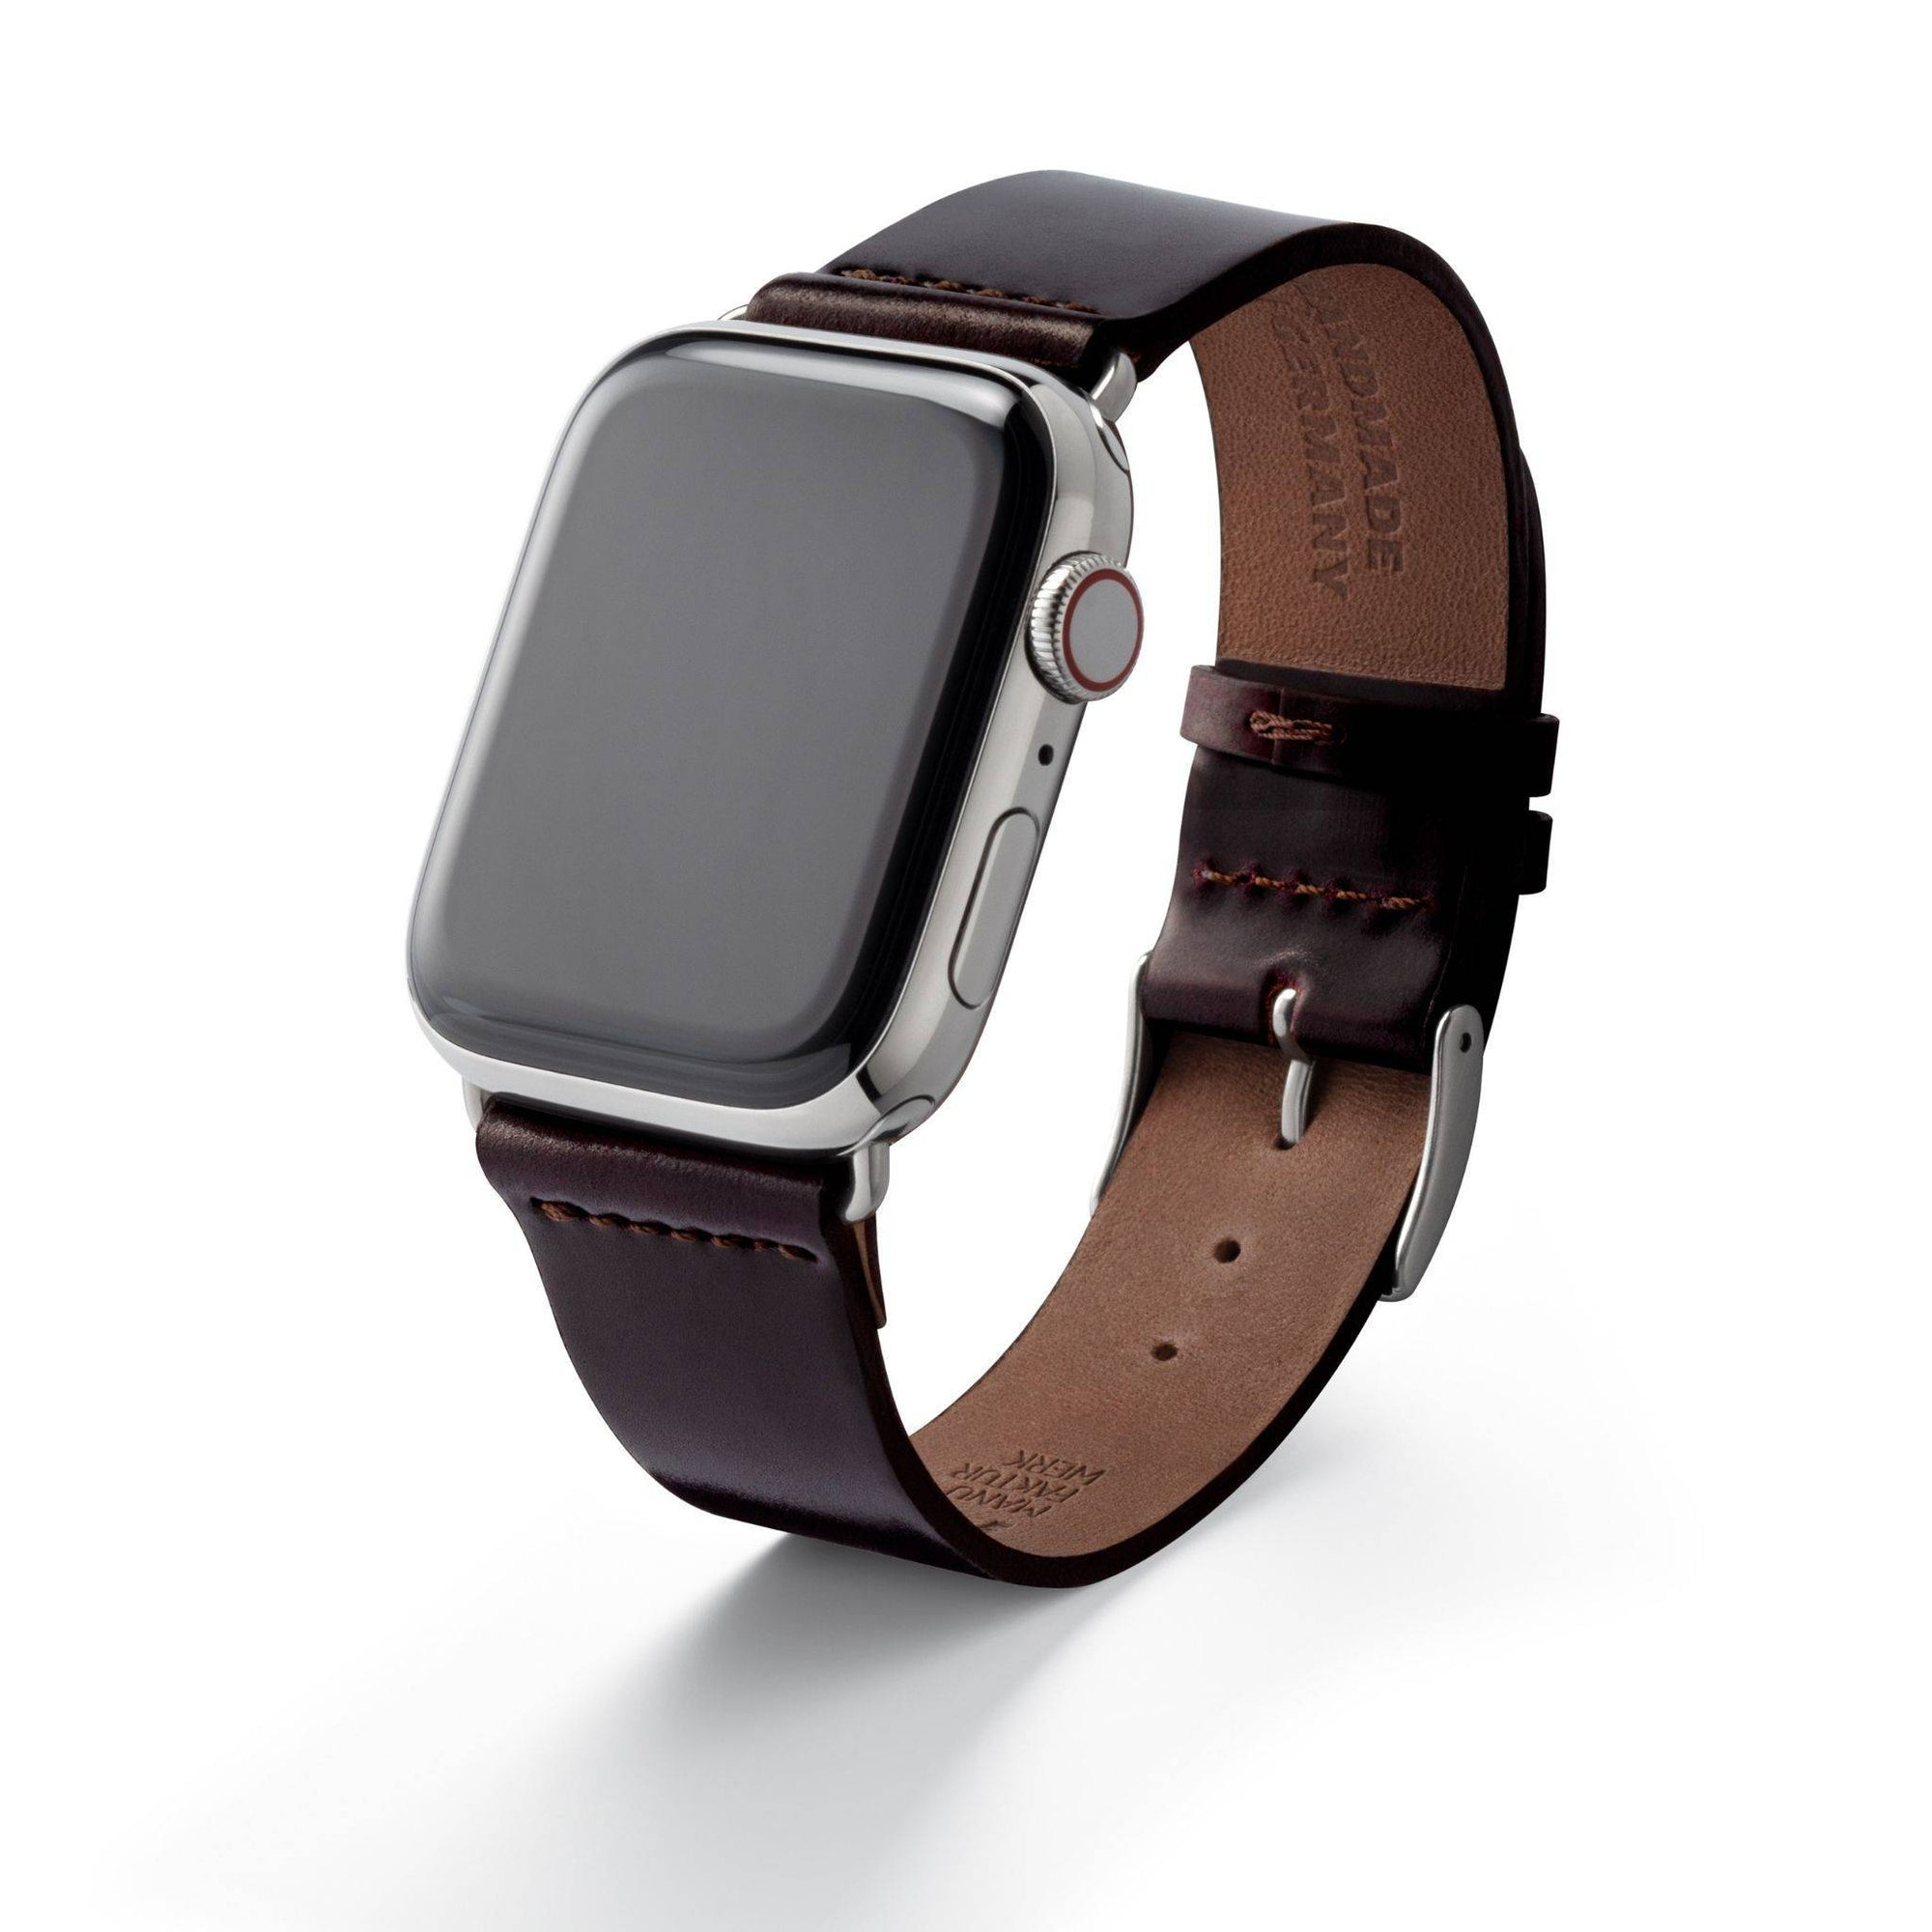 "Lederarmband für Apple Watch ""EPPENDORF"" (SHELL CORDOVAN) - BORDEAUX - MANUFAKTURWERK"